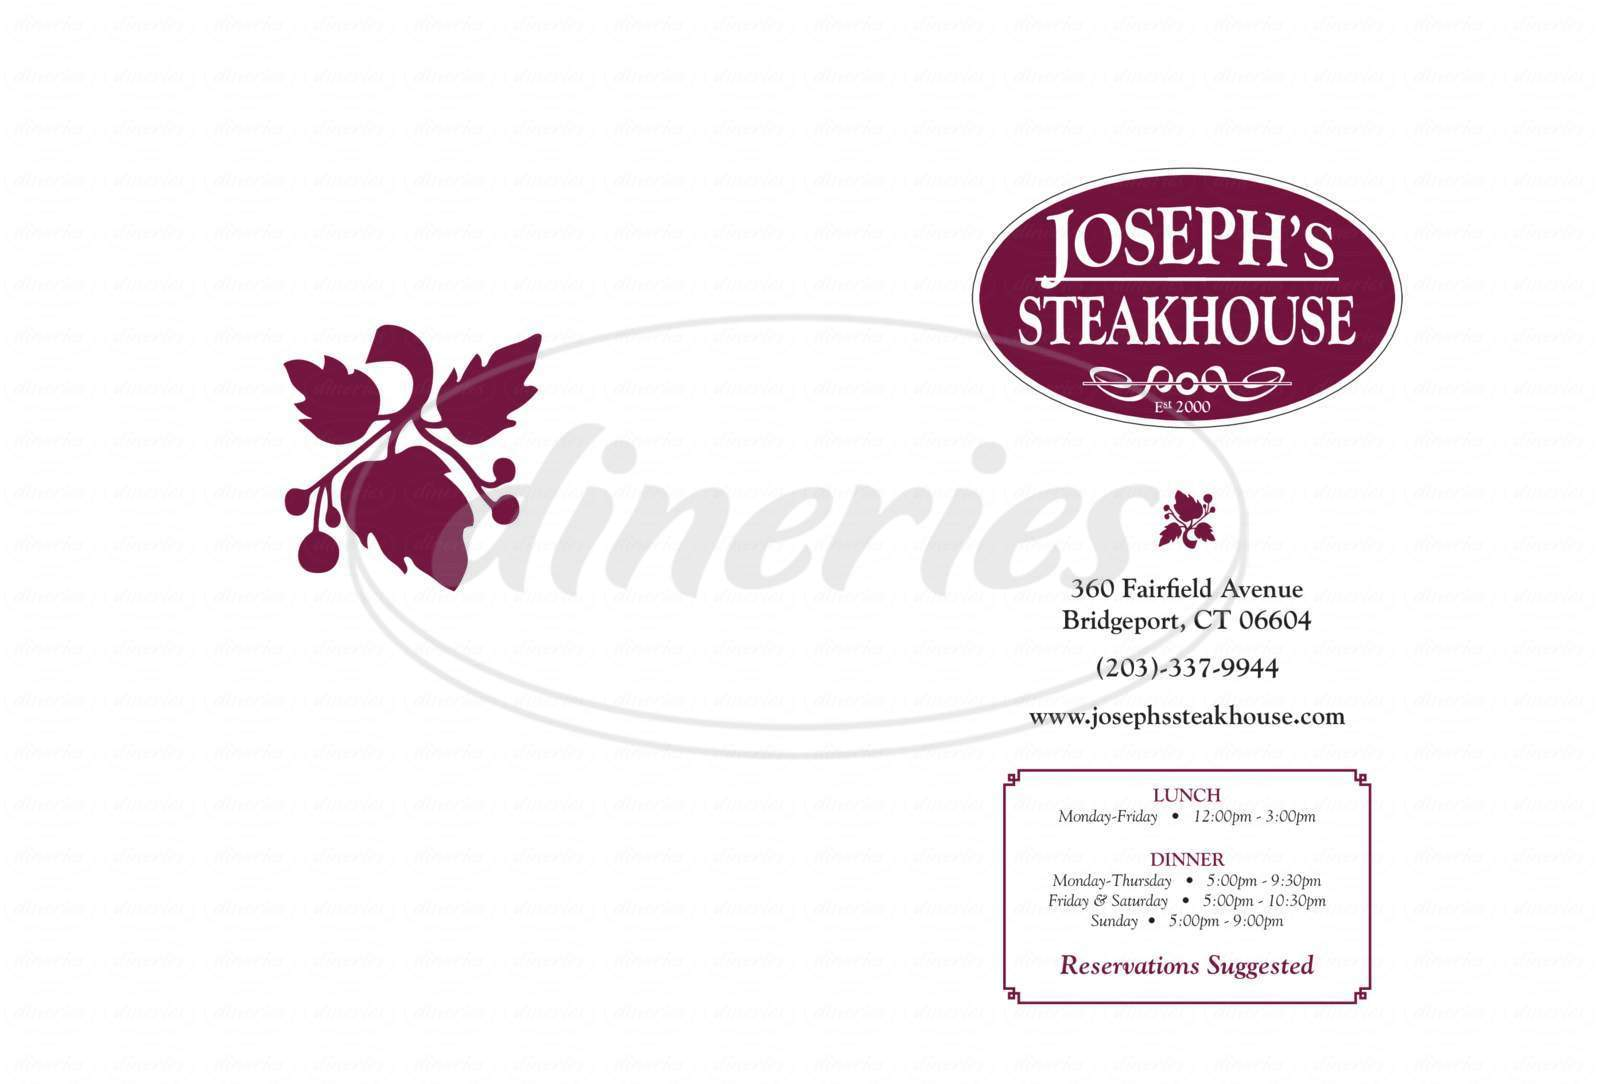 menu for Joseph's Steakhouse